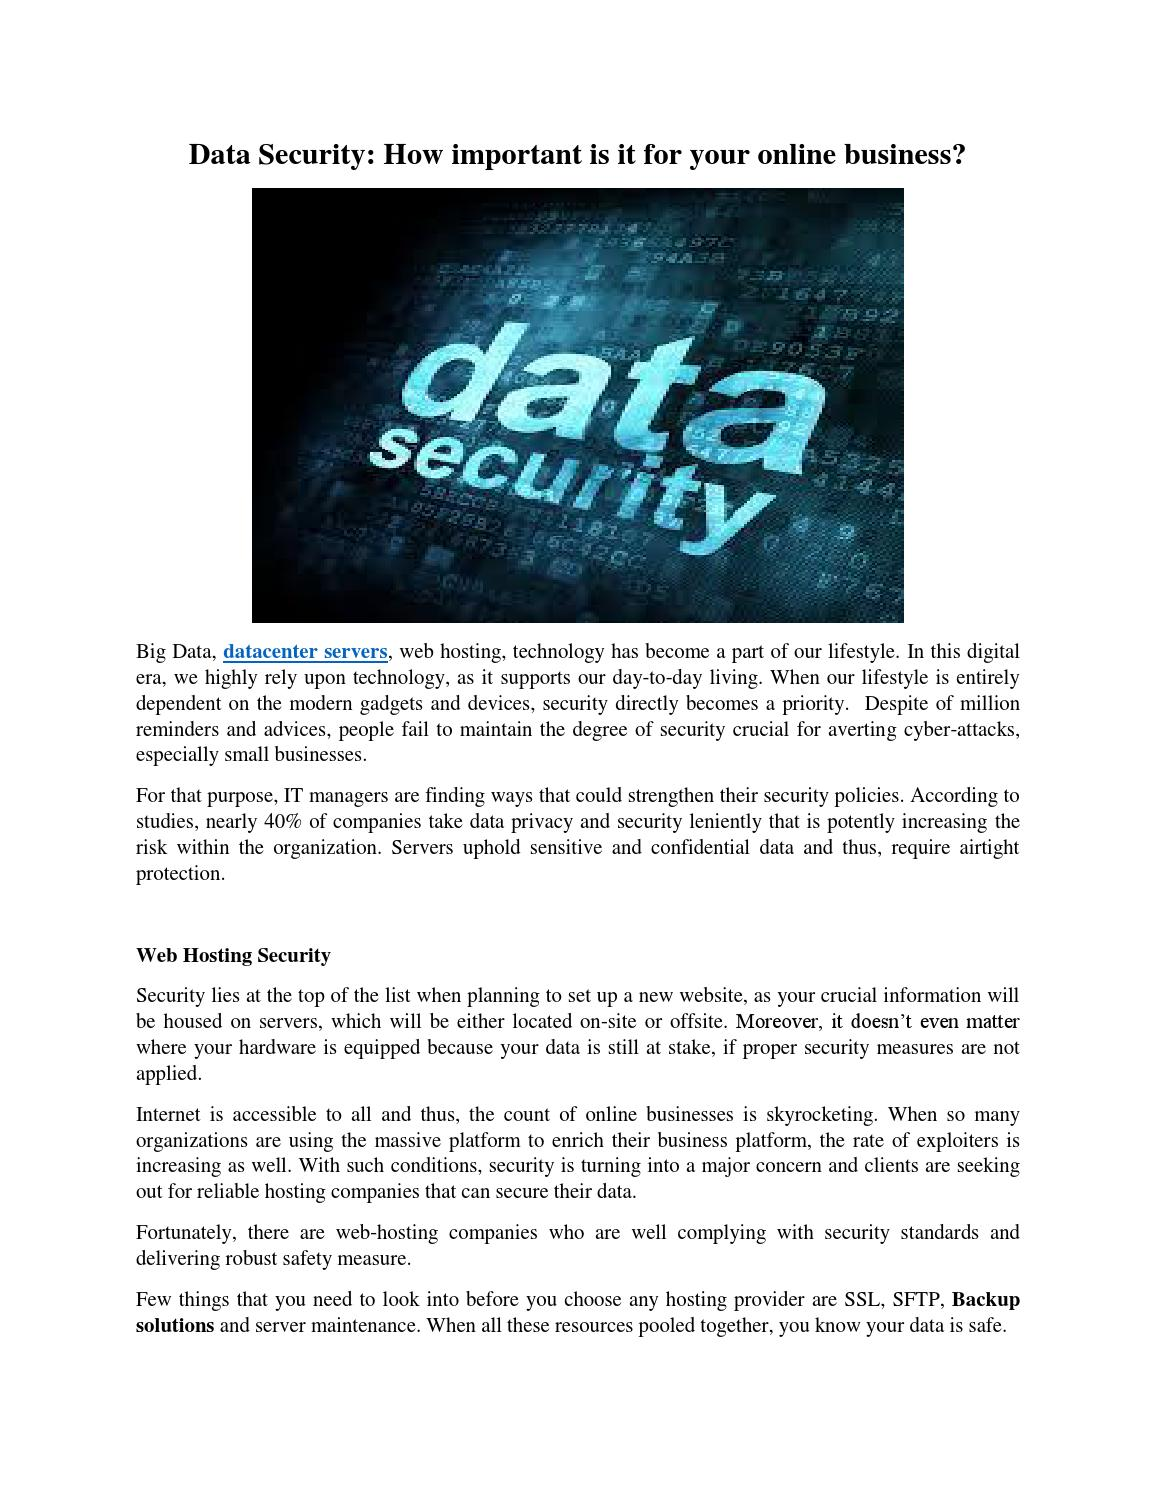 Data Security: How important is it for your online business